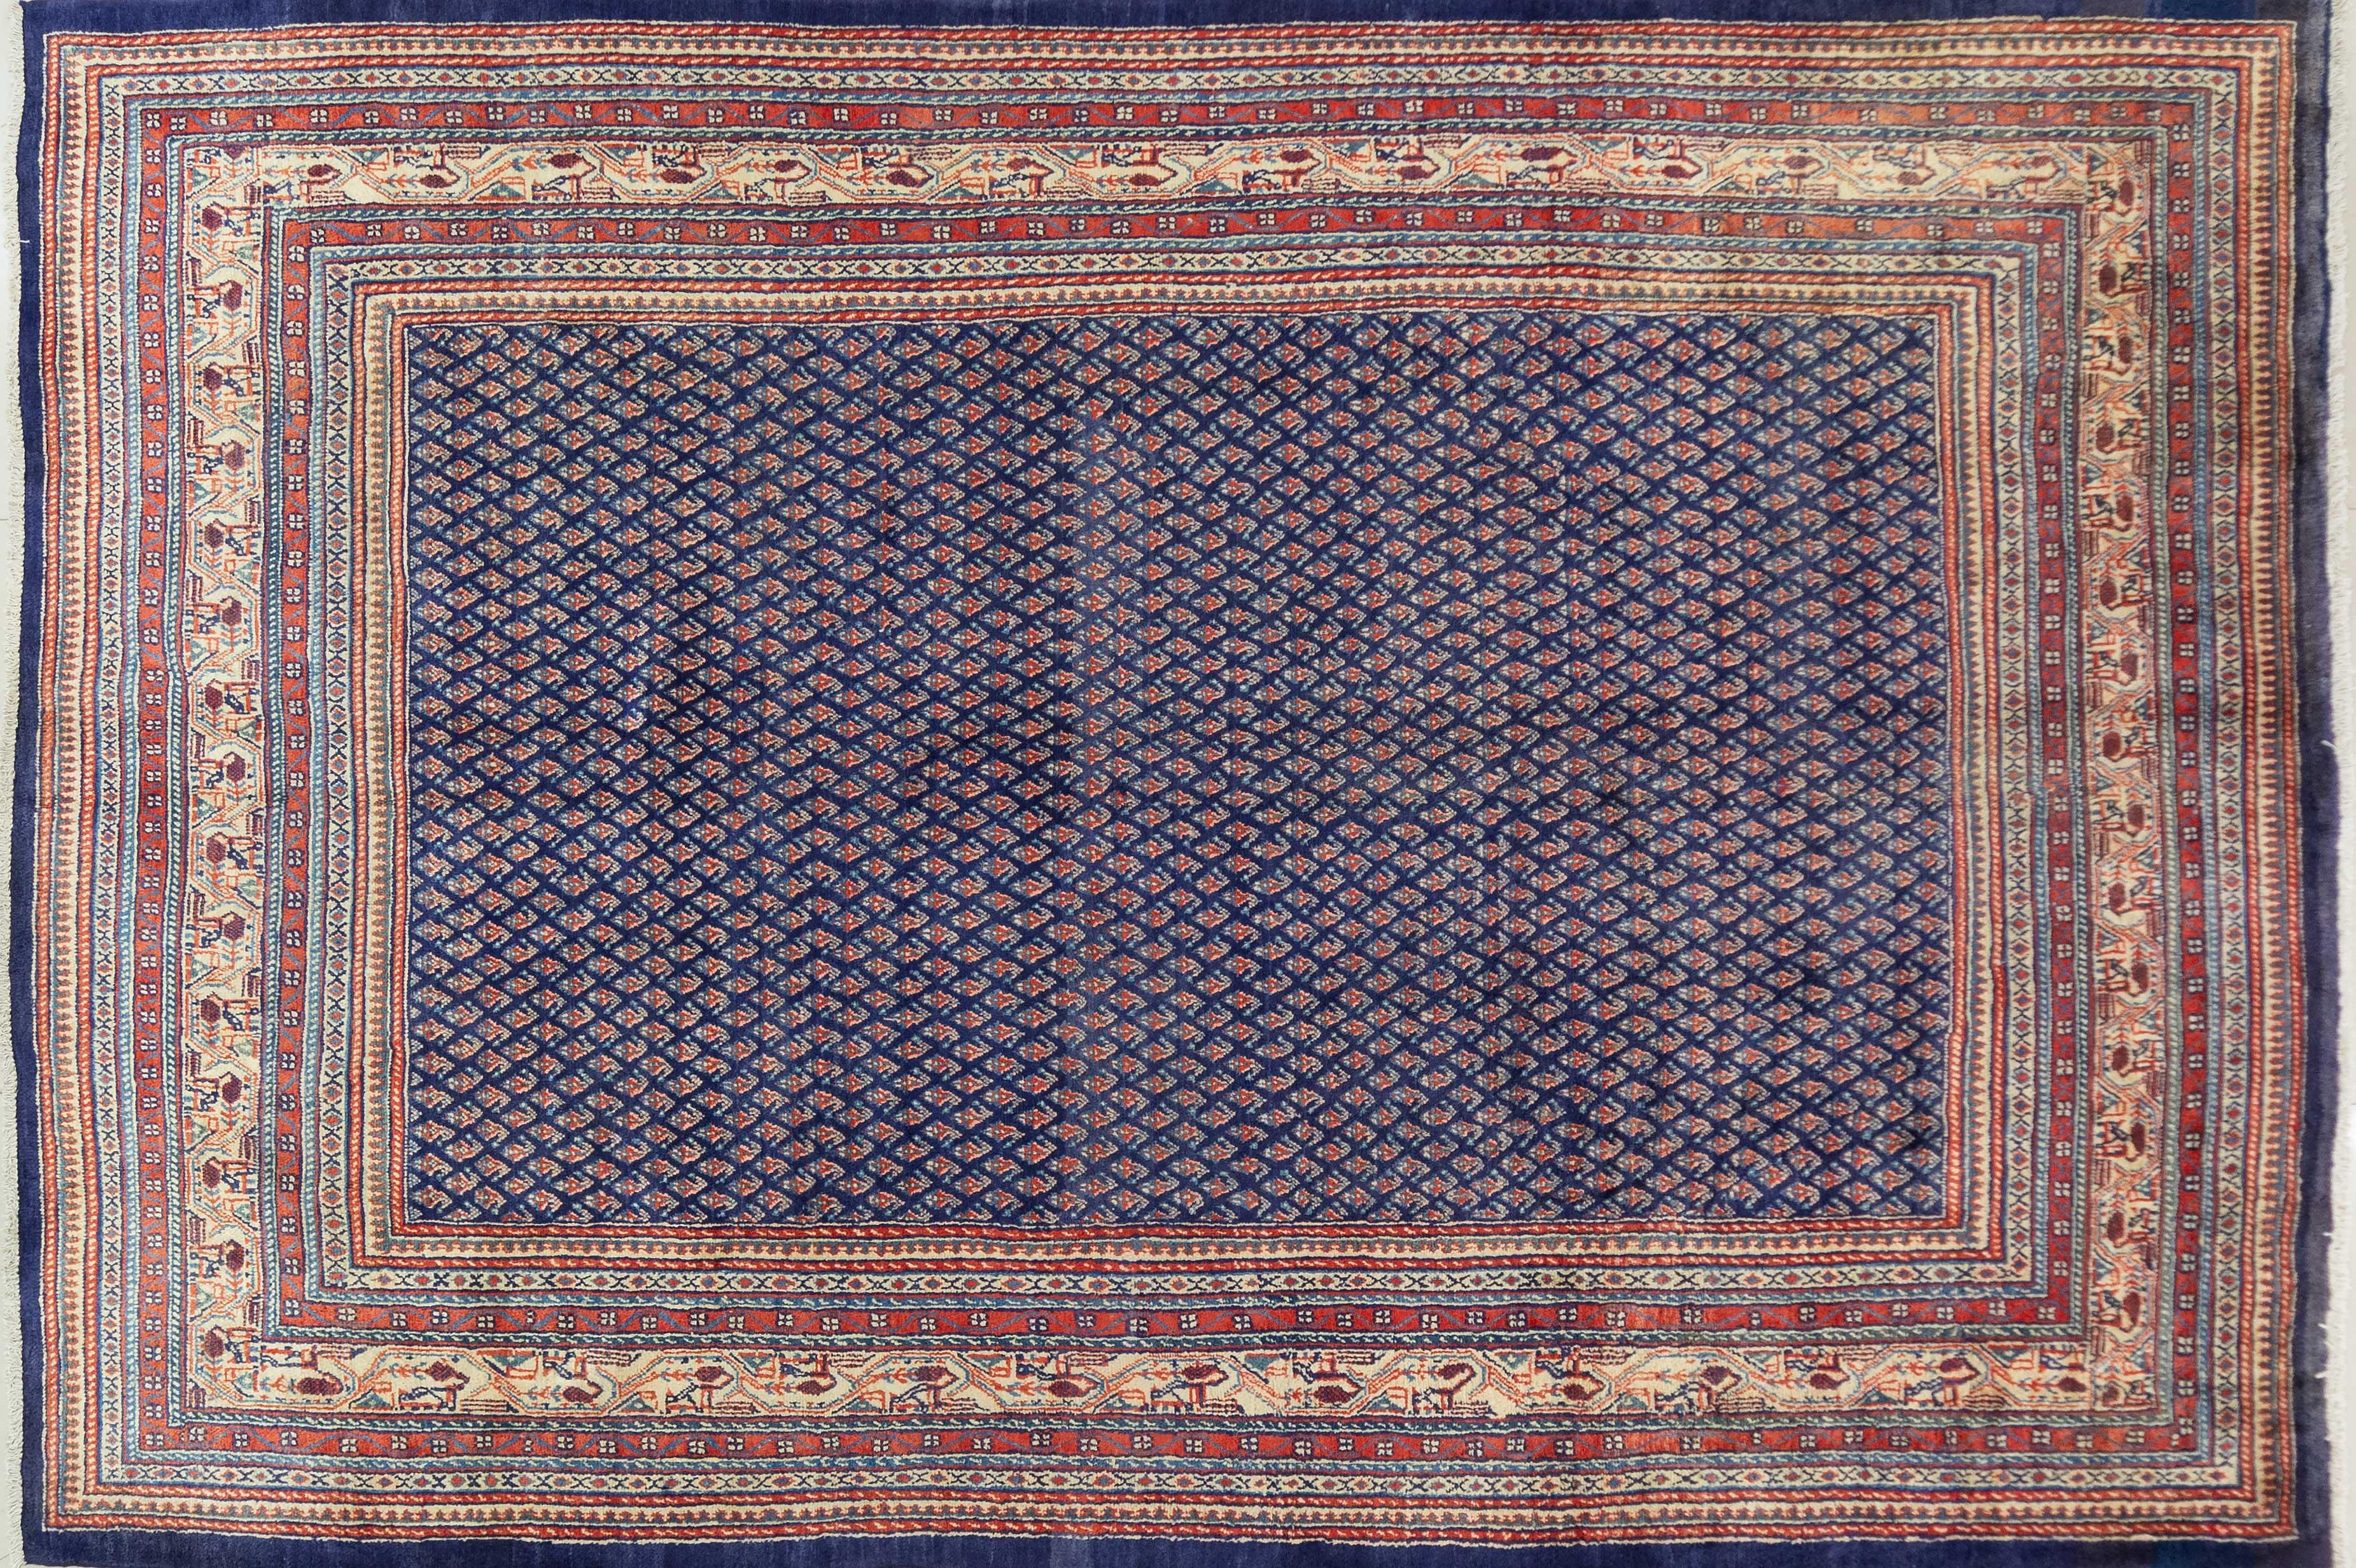 A Persian Hand Knotted Mir Carpet, 307 X 217